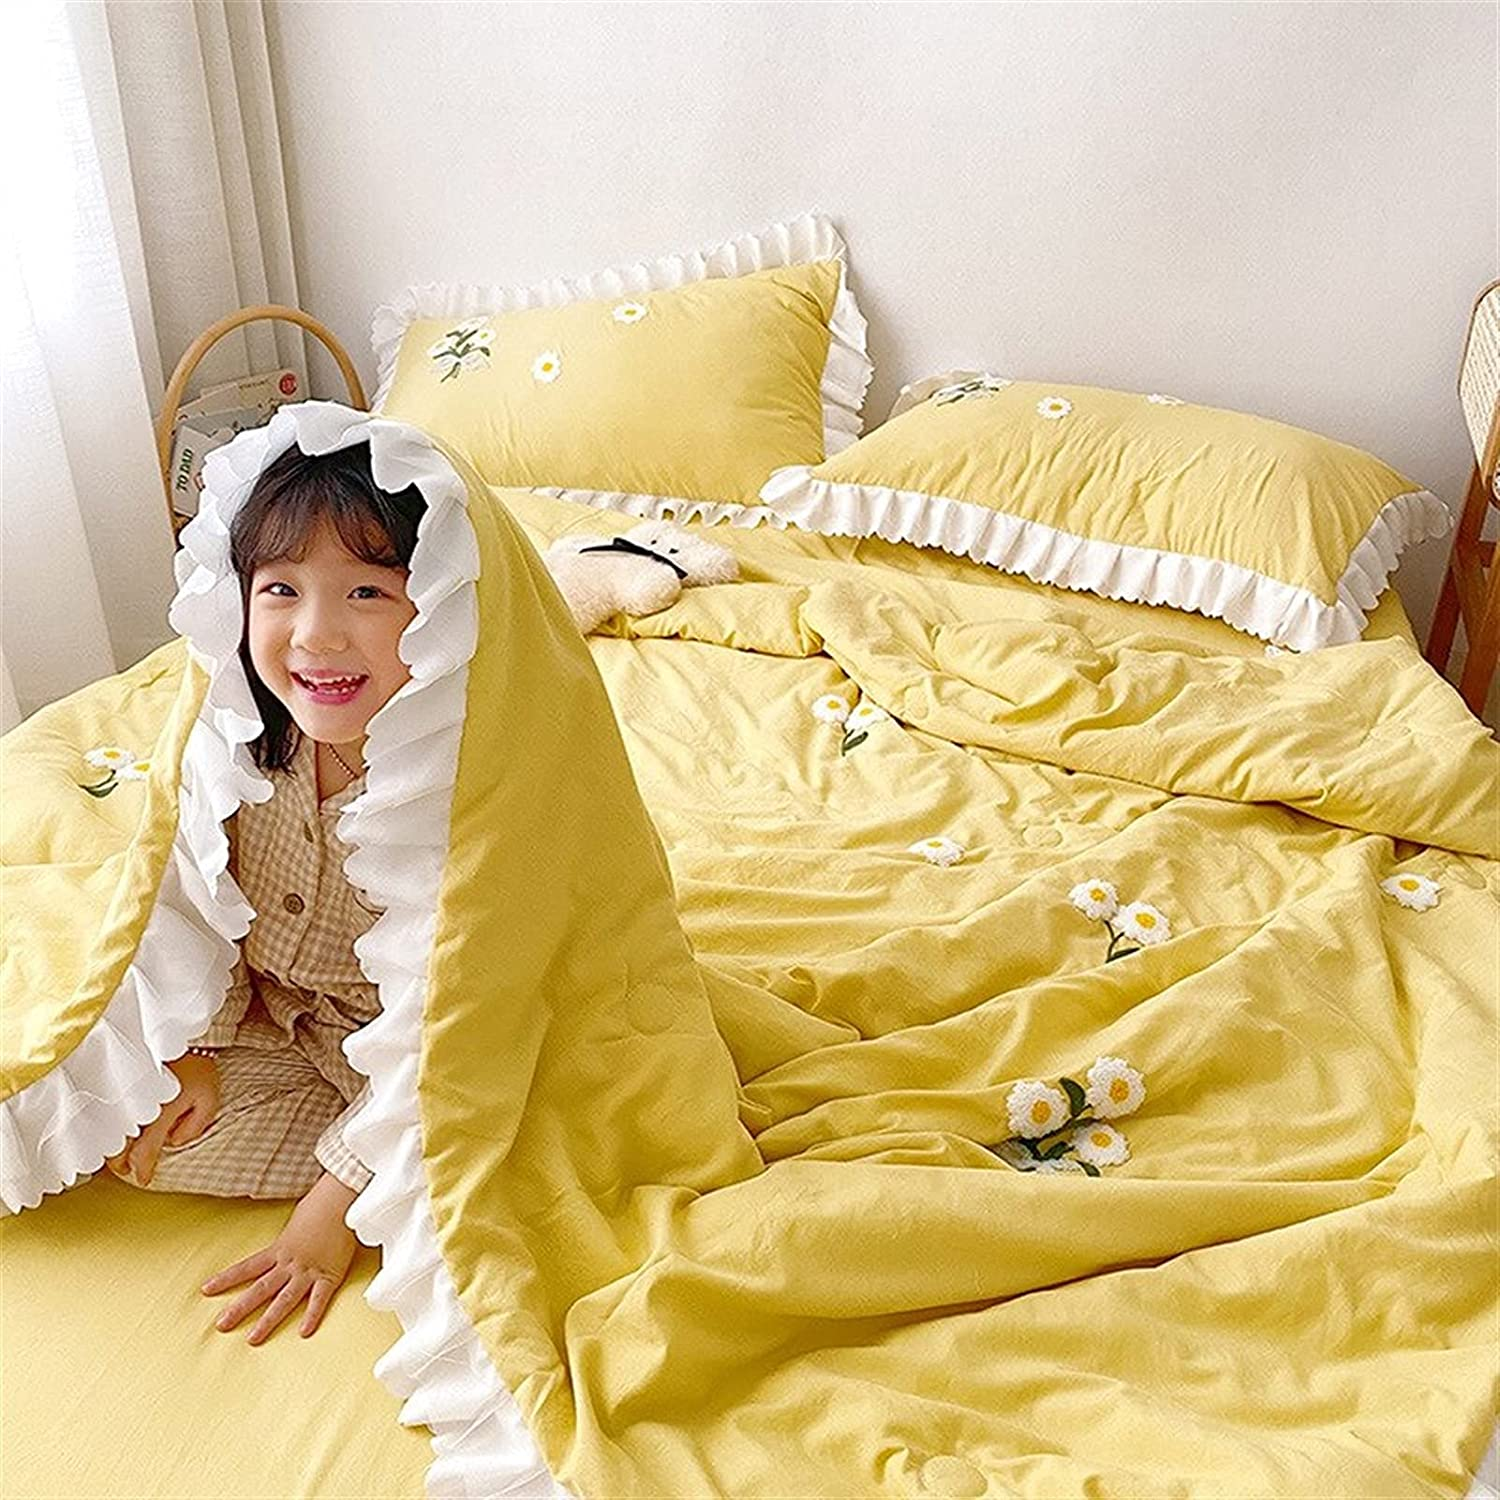 Zasinege Lowest price challenge Bedding Thin Embroidered Summer Conditio El Paso Mall Cool Air Quilt